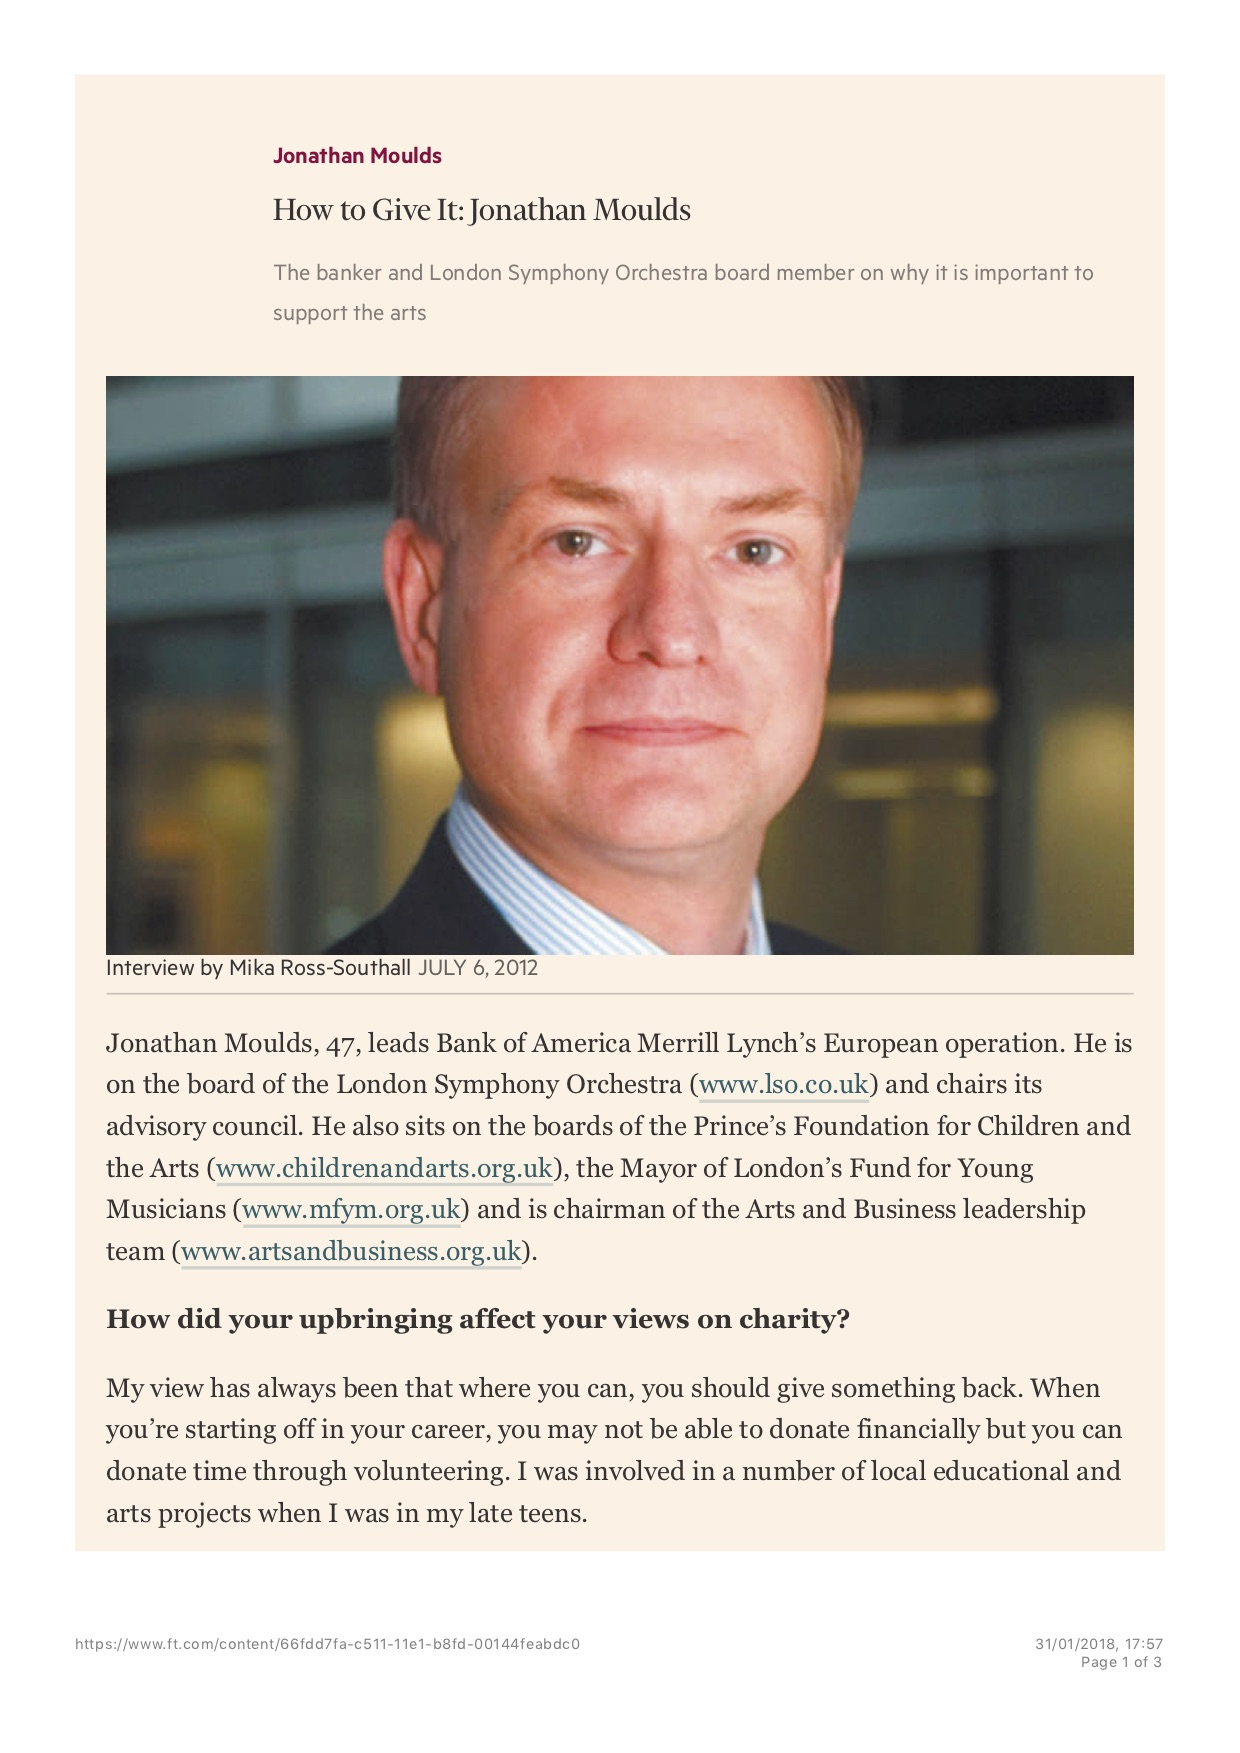 How to Give It: Jonathan Moulds, Published in the Financial Times Weekend Life & Arts (print), July 6 2012